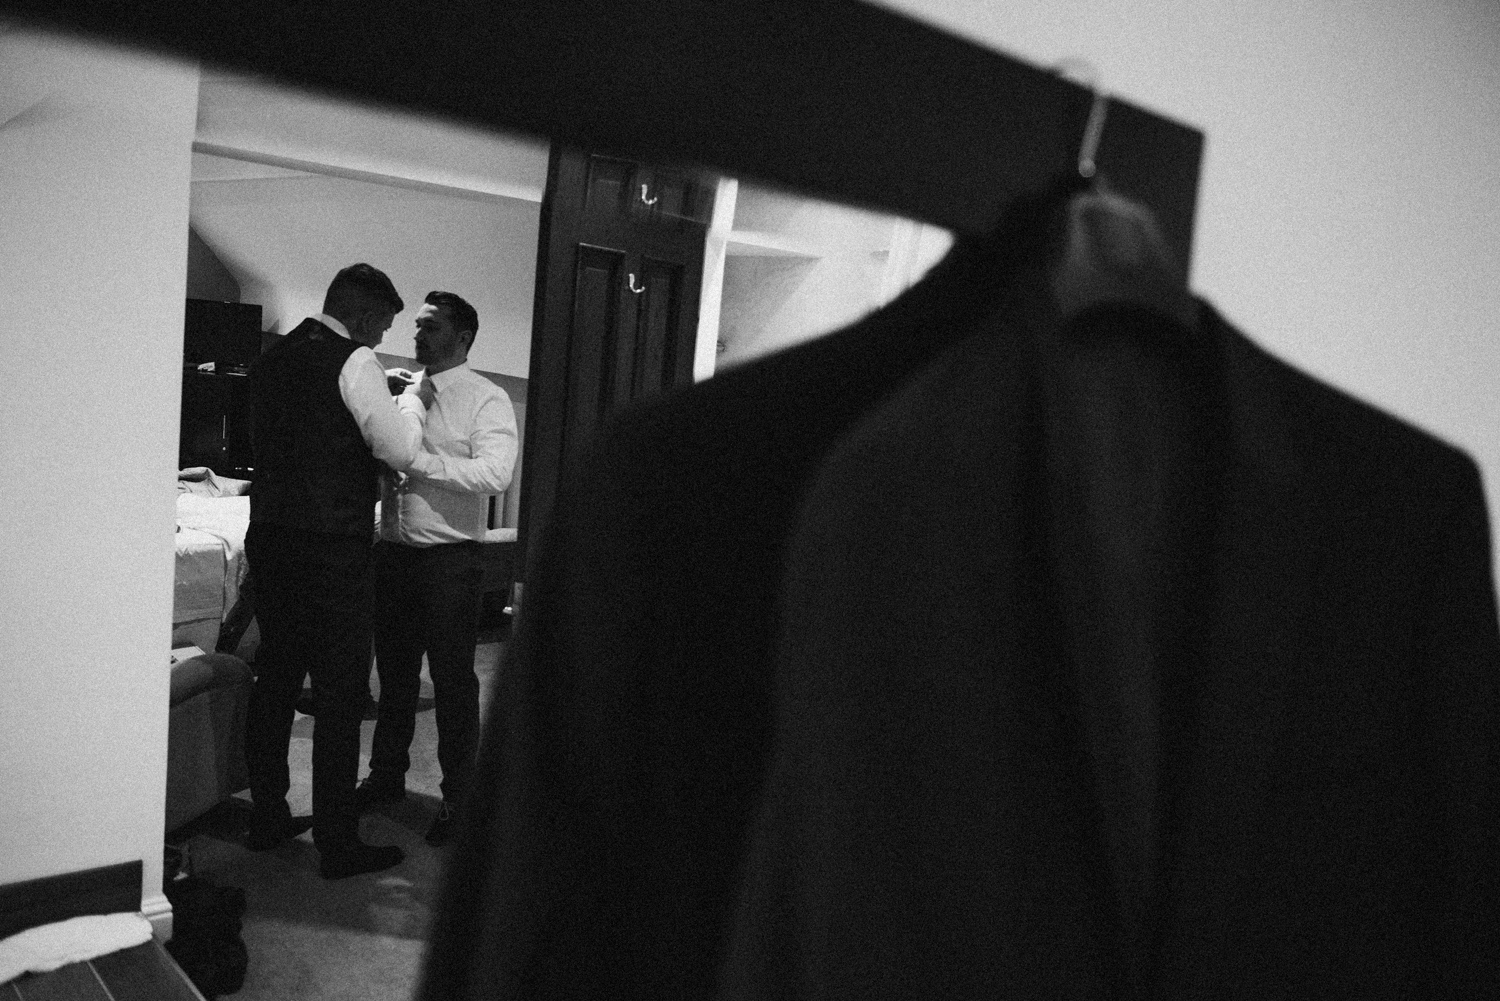 Groom helping the best man to get ready